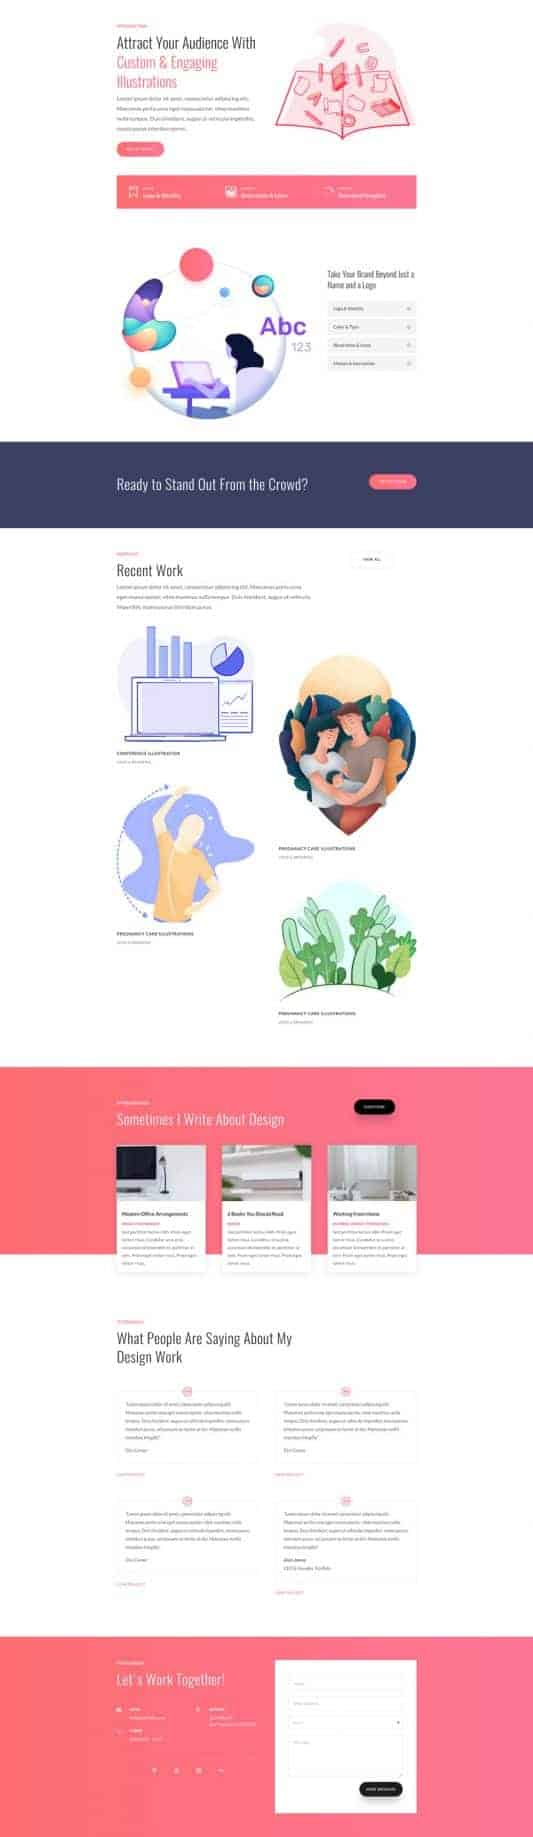 The Graphic Illustrator Page Style: Homepage Design 1